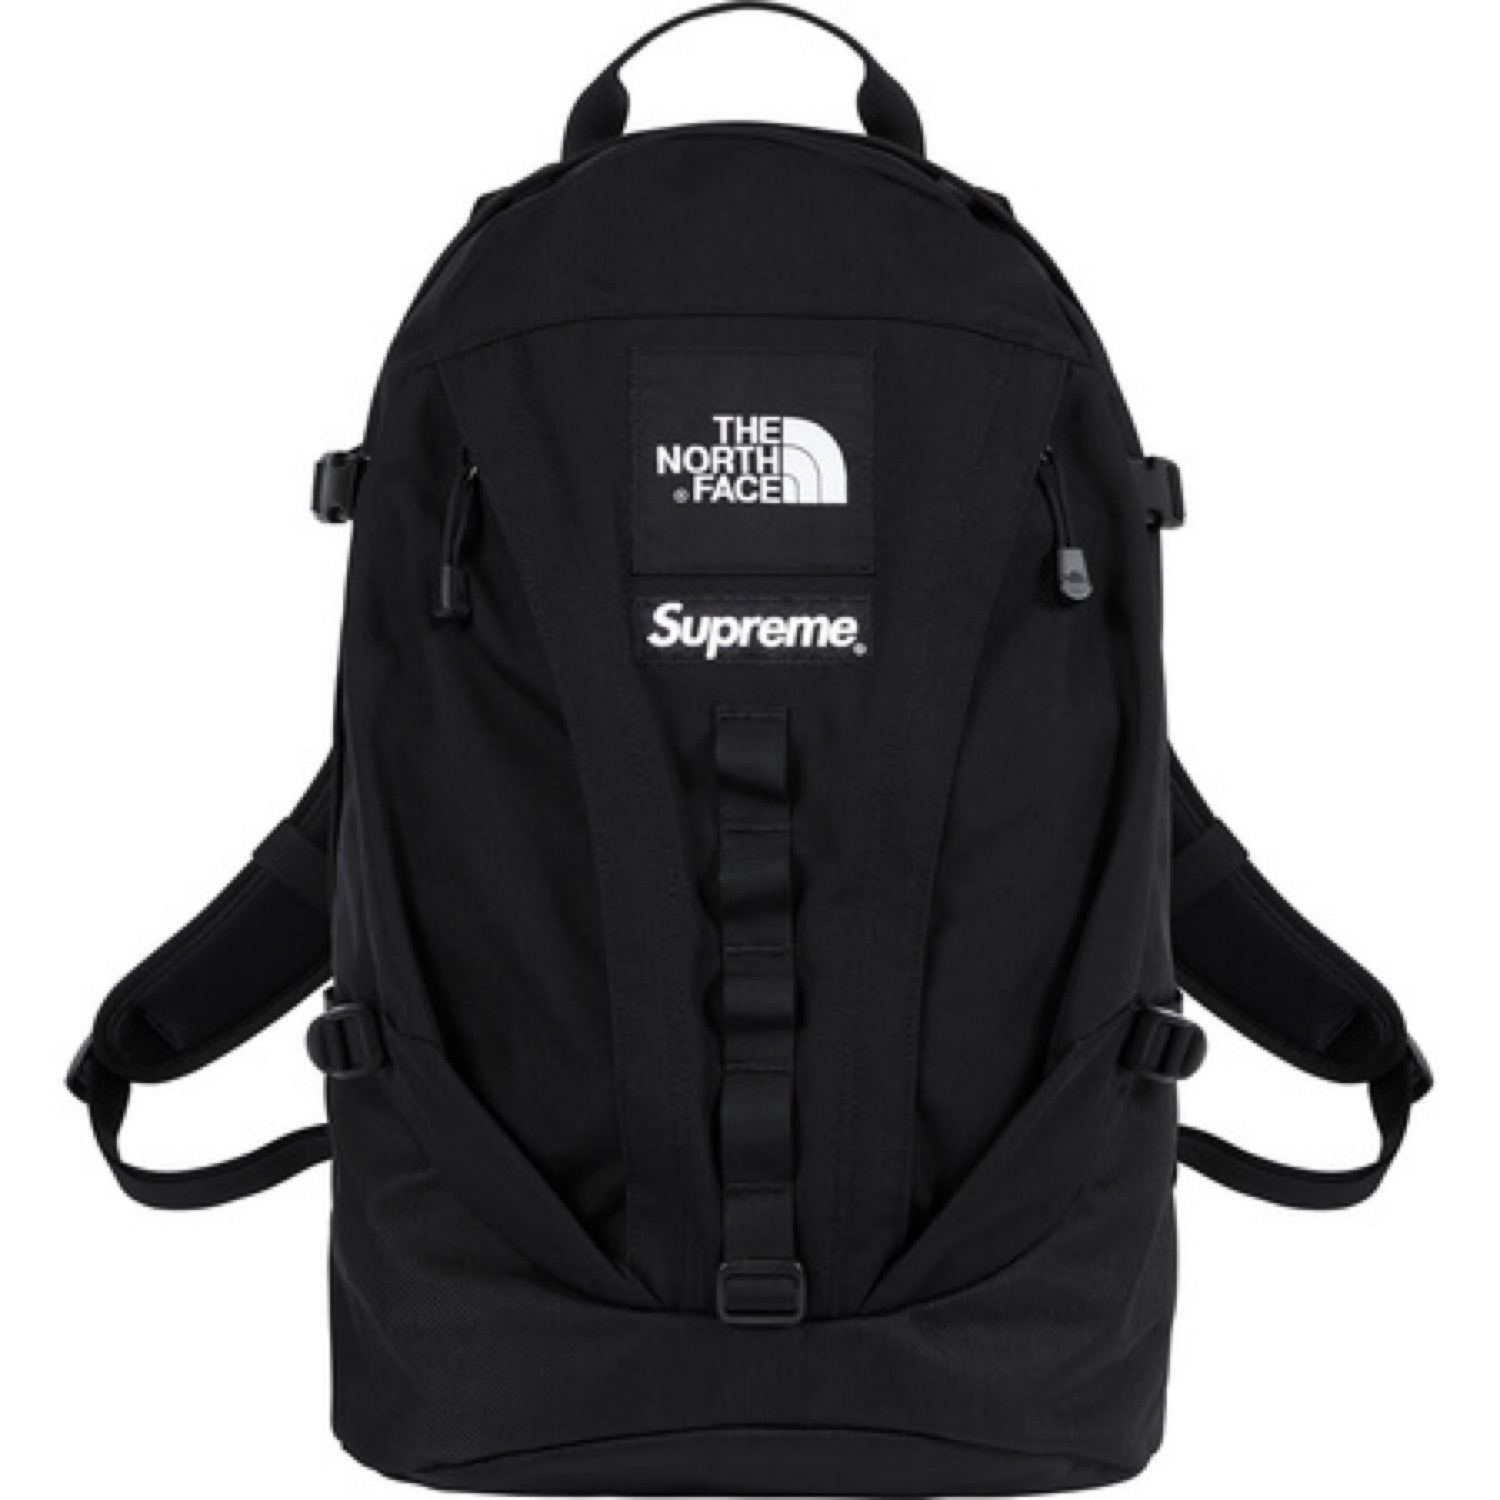 0f269bb5d1e Supreme X Tnf Expedition Backpack